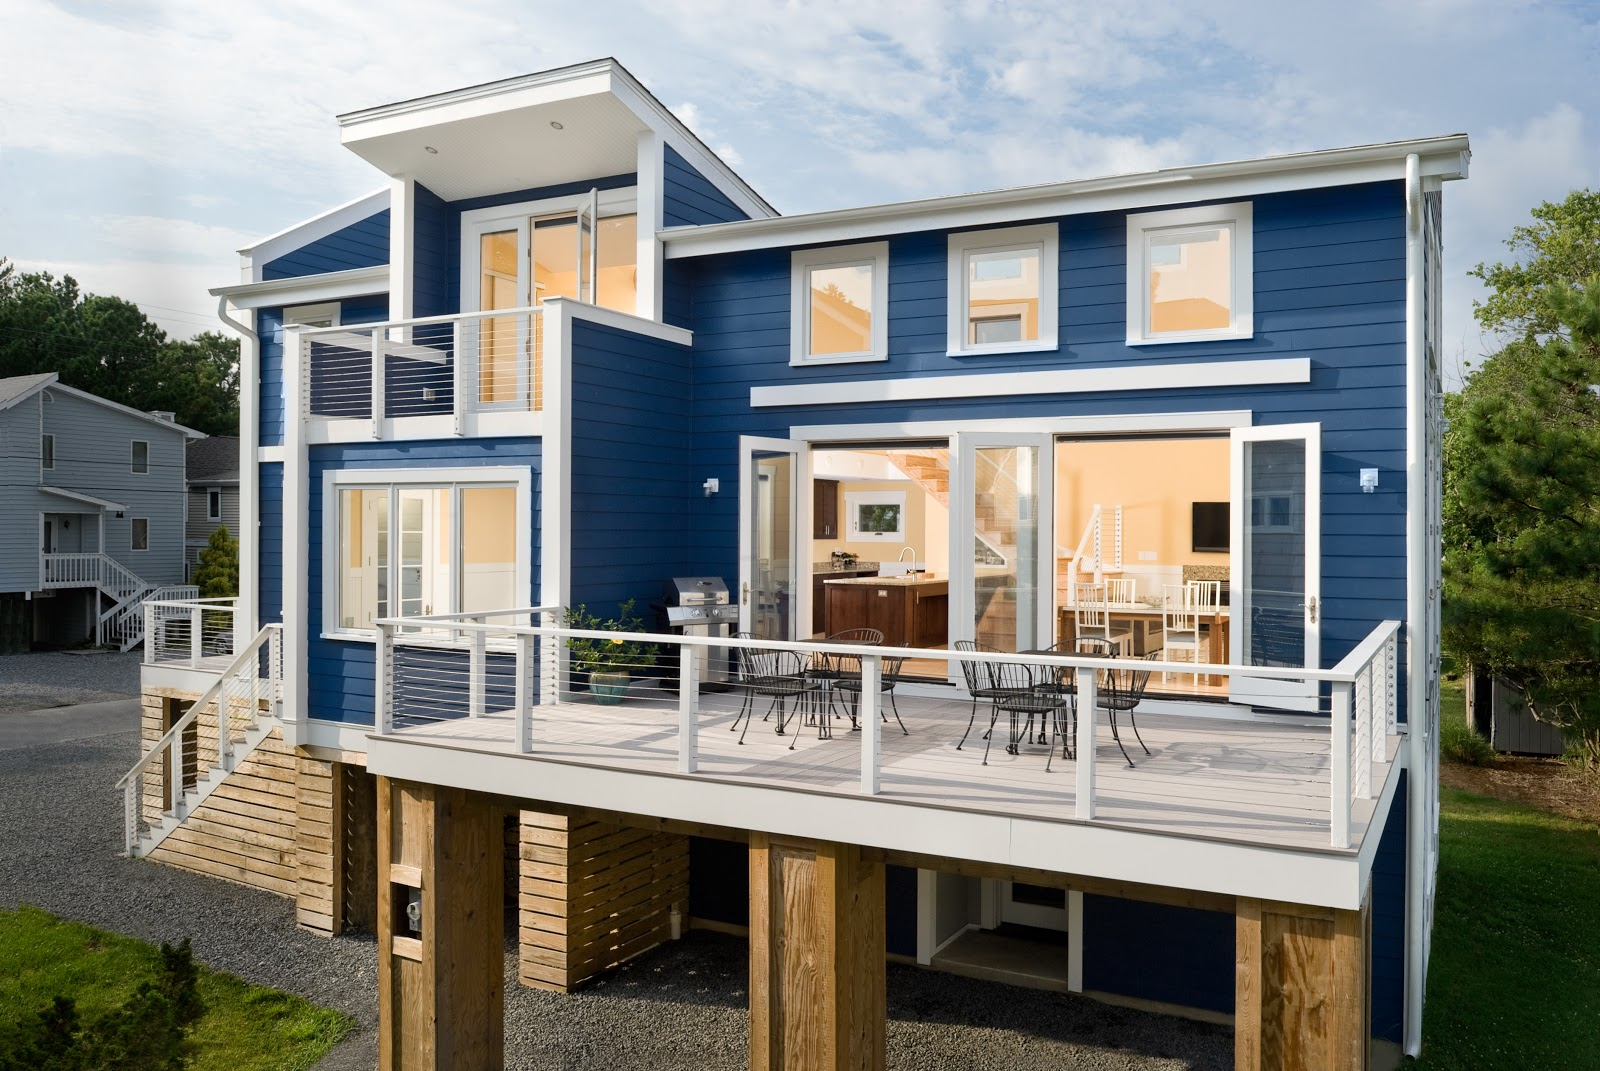 The New Beach House: Two Pretty Cool Houses